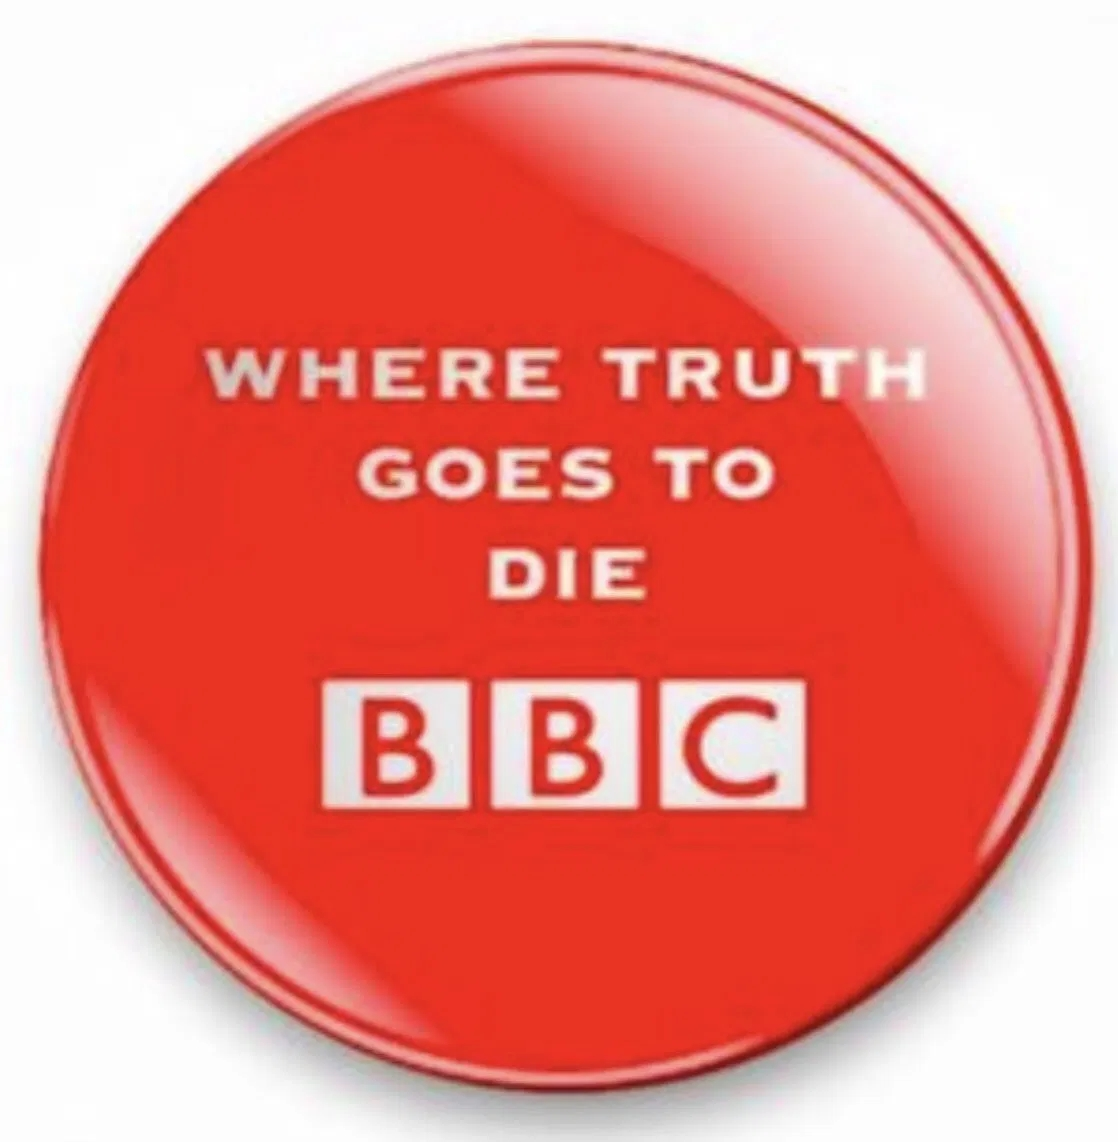 #Brexit showed everything in its True Colours. #MSM were Blatant #EU, the People were Blatant Brexit. They should've moved back to being Neutral but No. During this #Pandemic the Govt Bashing has been Relentless. Our Youth have been Brainwashed by #Globalist #Education & Media